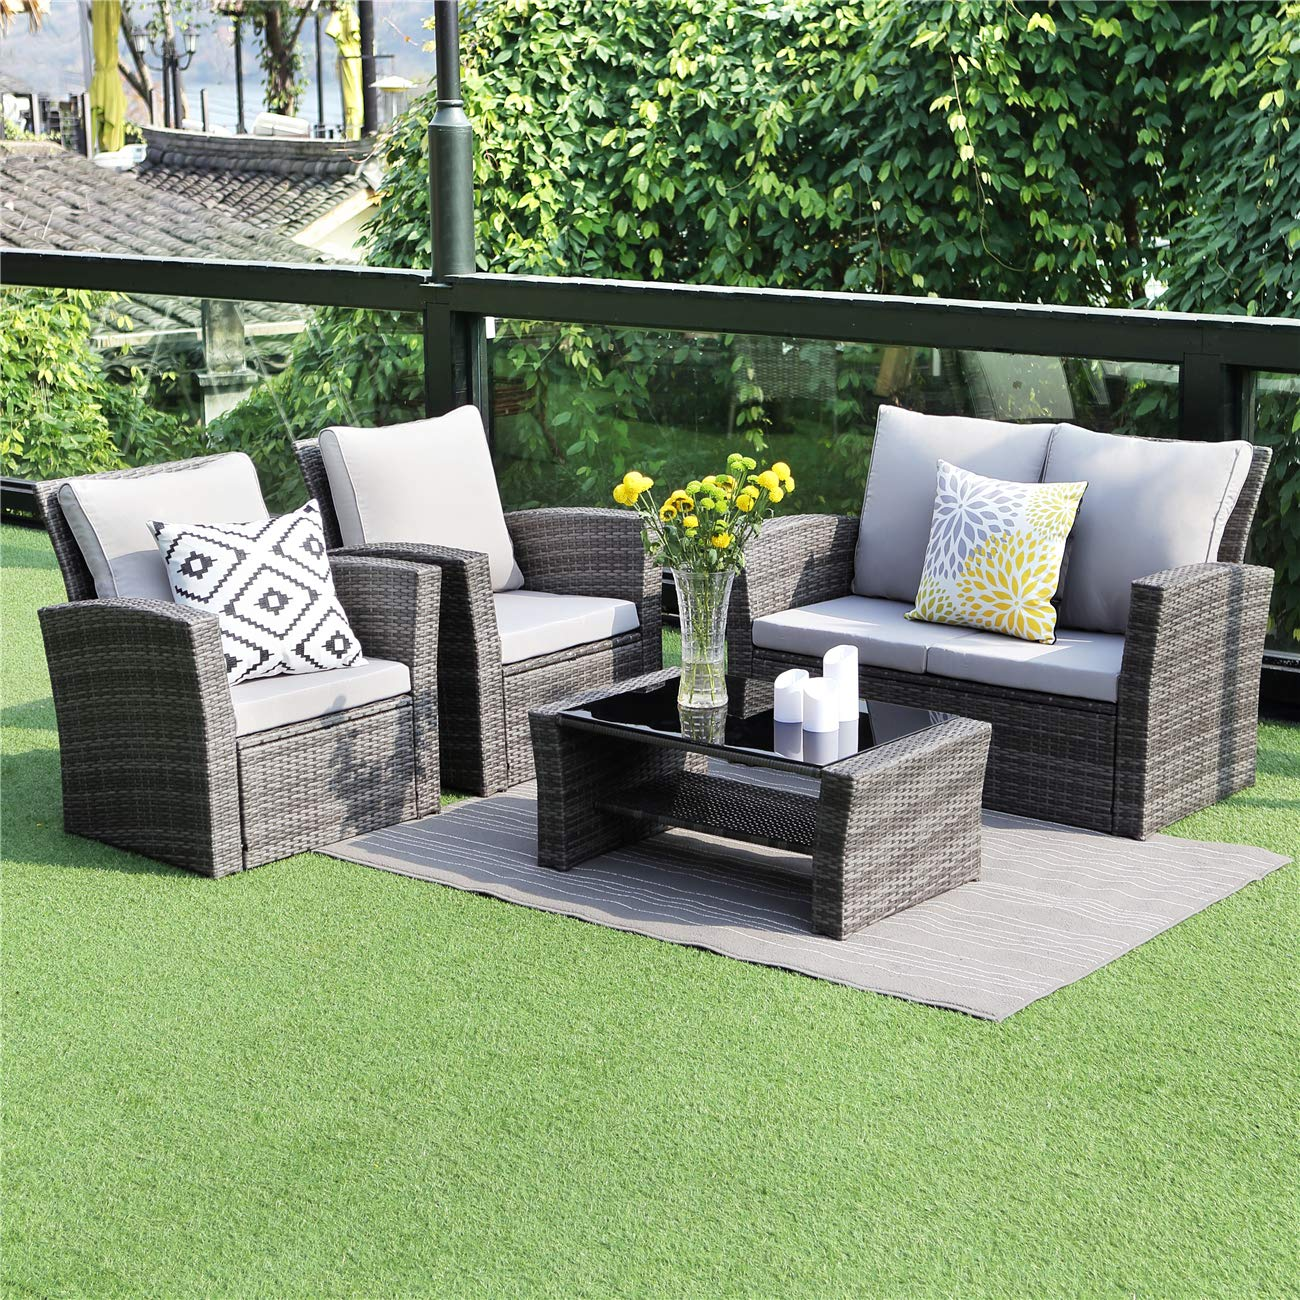 outdoor patio furniture clearance amazon com rh amazon com patio furniture on clearance at lowes patio furniture on clearance at walmart